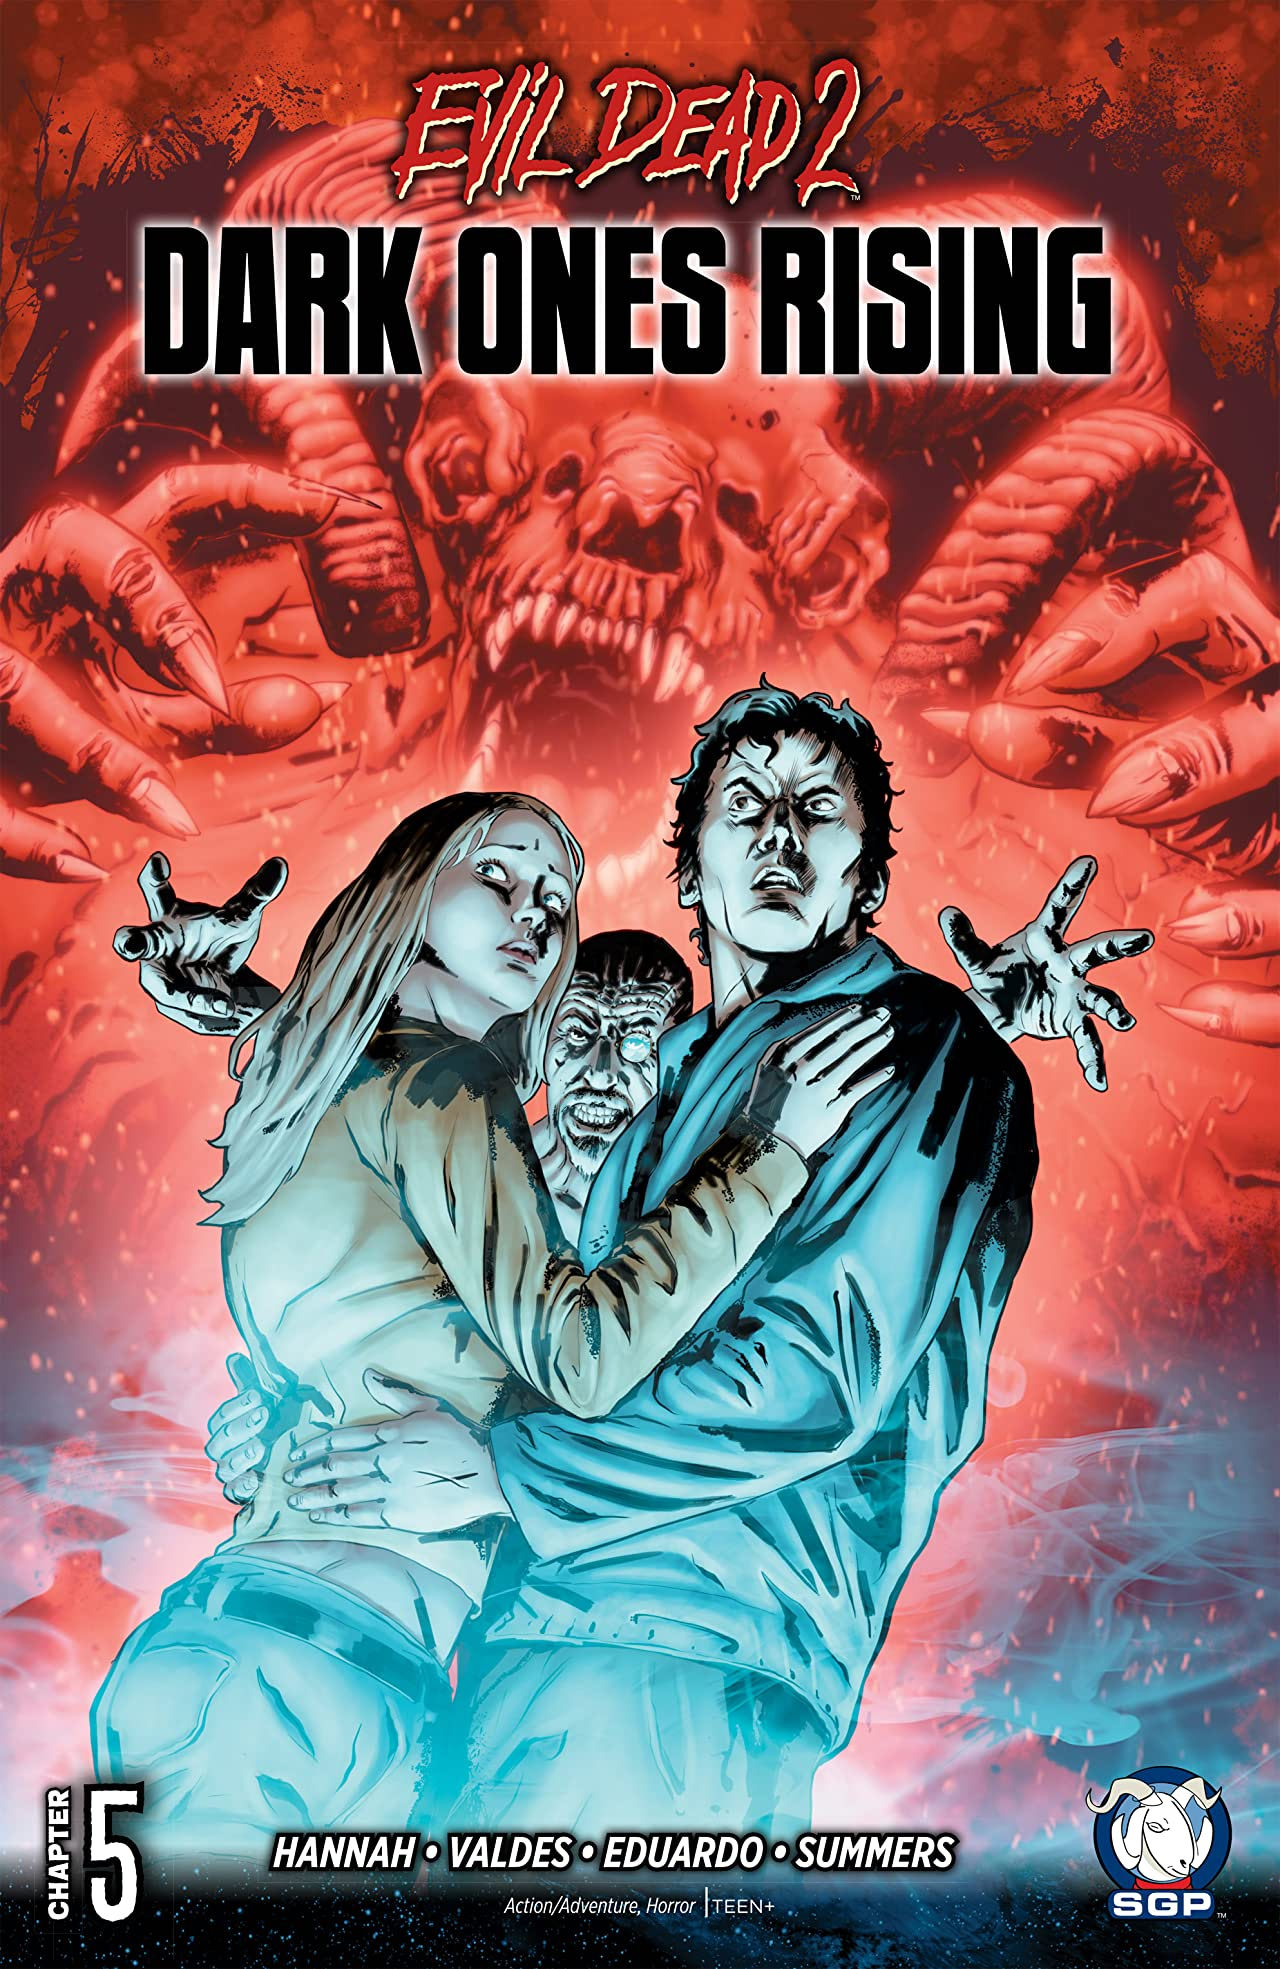 Evil Dead 2: Dark Ones Rising #5